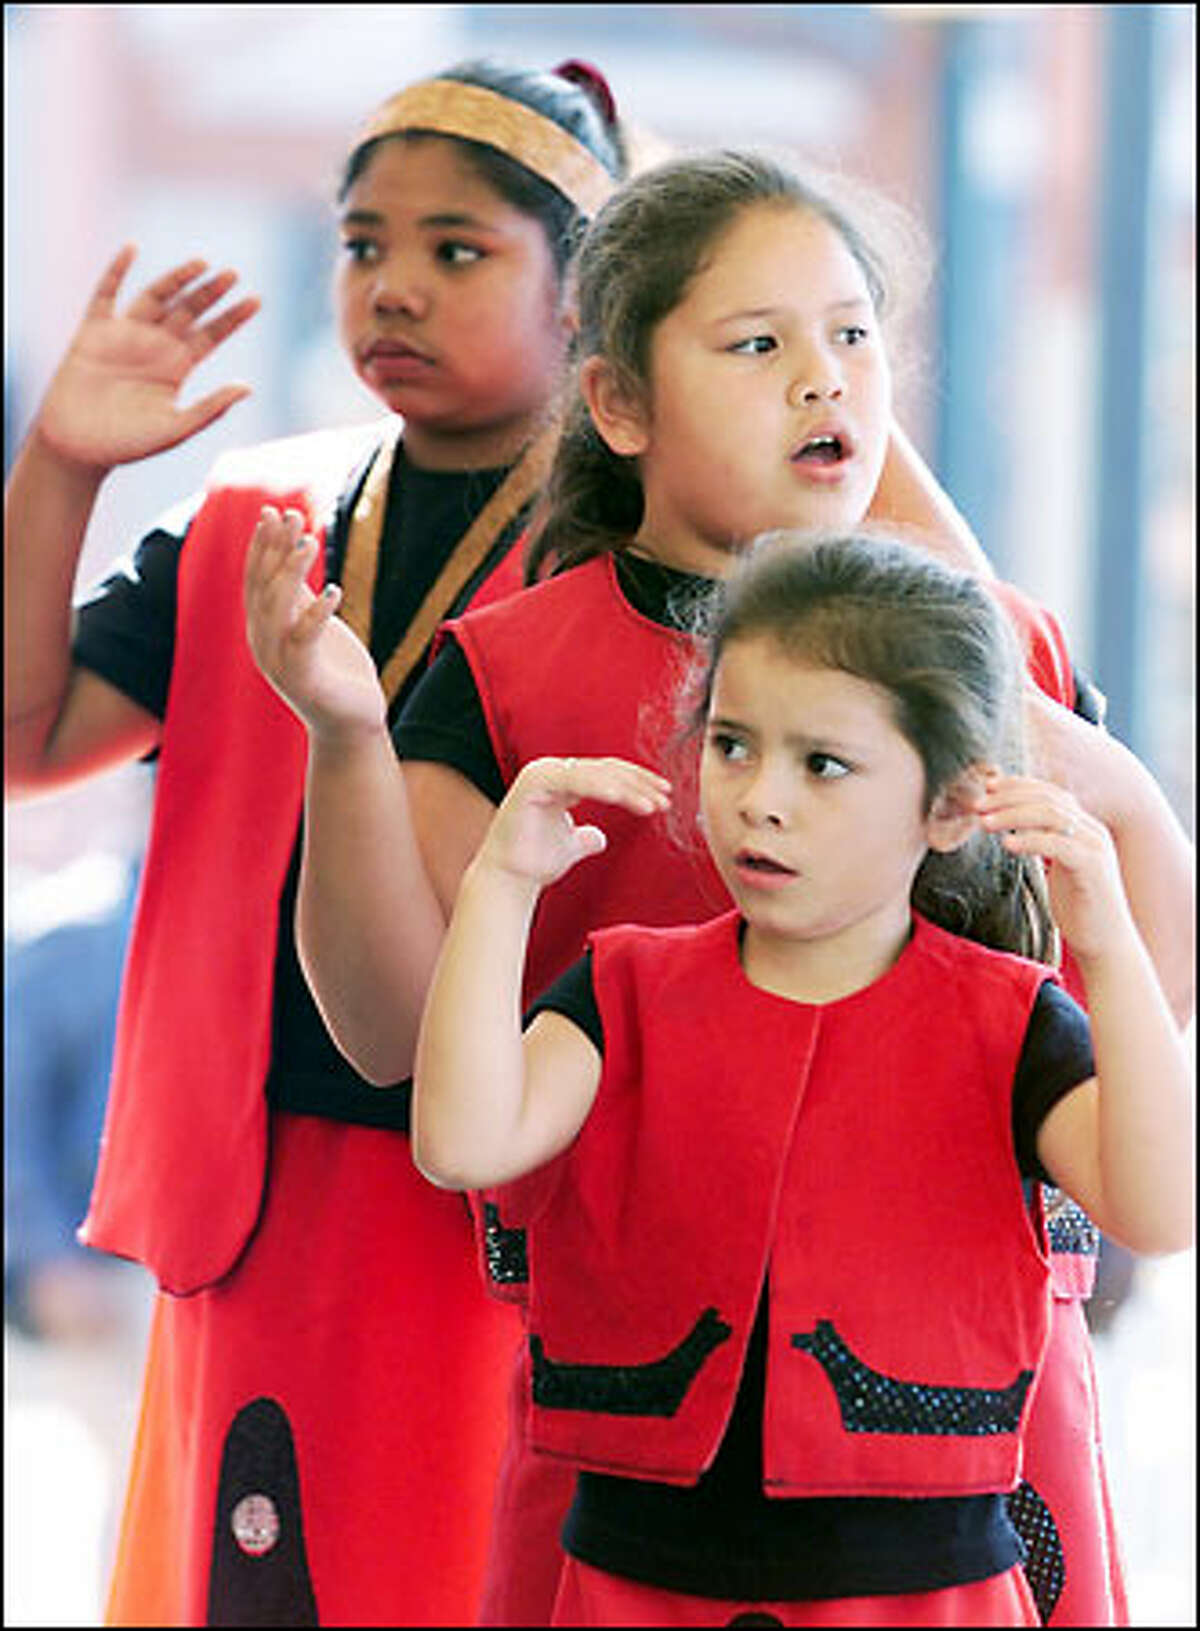 Mekyla Freberg, 5, leads as a group of young Tulalip Canoe Family Dancers performs at the Salmon Homecoming Celebration. leading, perform at the 9th annual Salmon Homecoming Celebration at Waterfront Park yesterday. Salmon Homecoming is dedicated to building bridges between tribal and non-tribal communities, celebrating the significance of salmon in our lives, and working together to ensure Pacific salmon survive. The festival continues through Sunday at Piers 62/63. For more information call (206) 386-4320 or visit www.salmonhomecoming.org. #20010913#Meryl Schenker###Members of the Tulalip Canoe